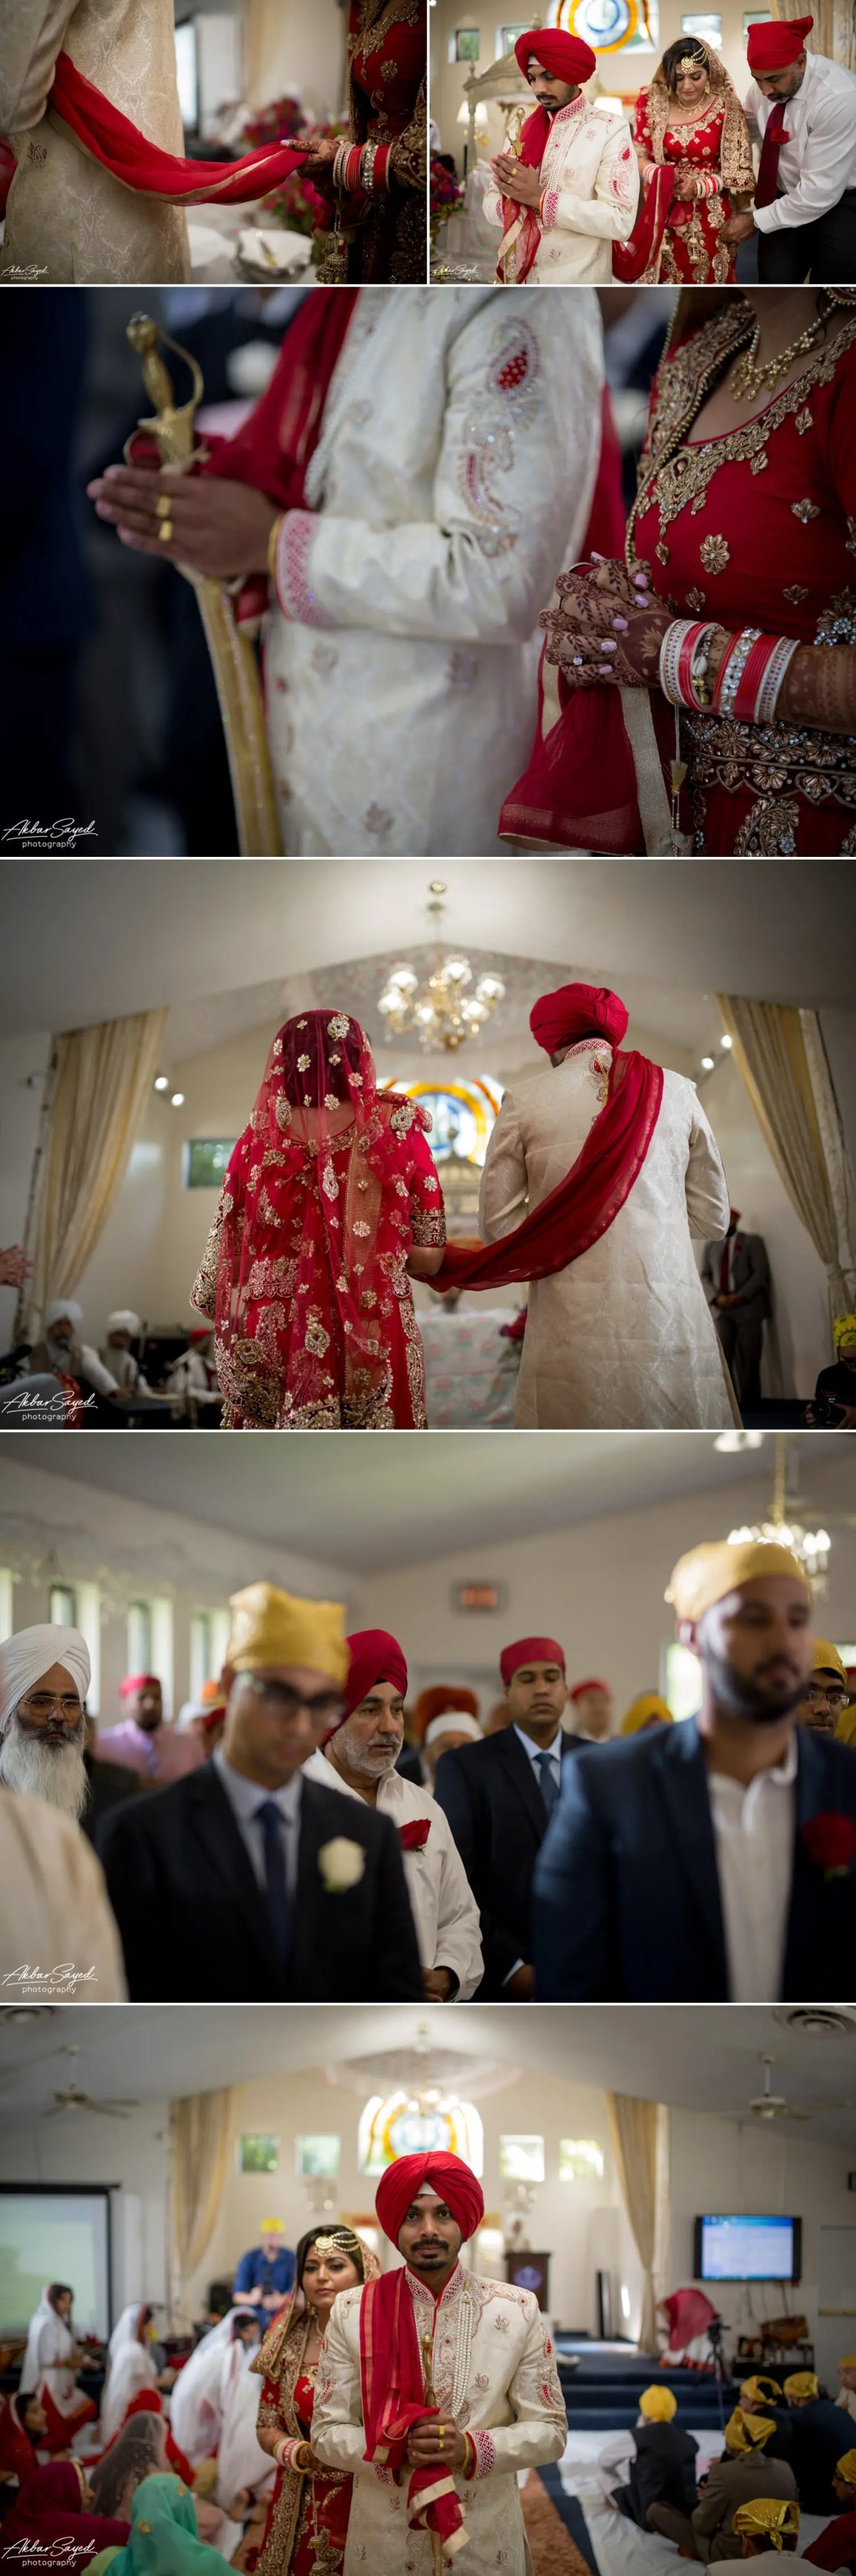 A photo collage of a couple during their Sikh wedding at Guru Nanak Foundation of America in Silver Spring.